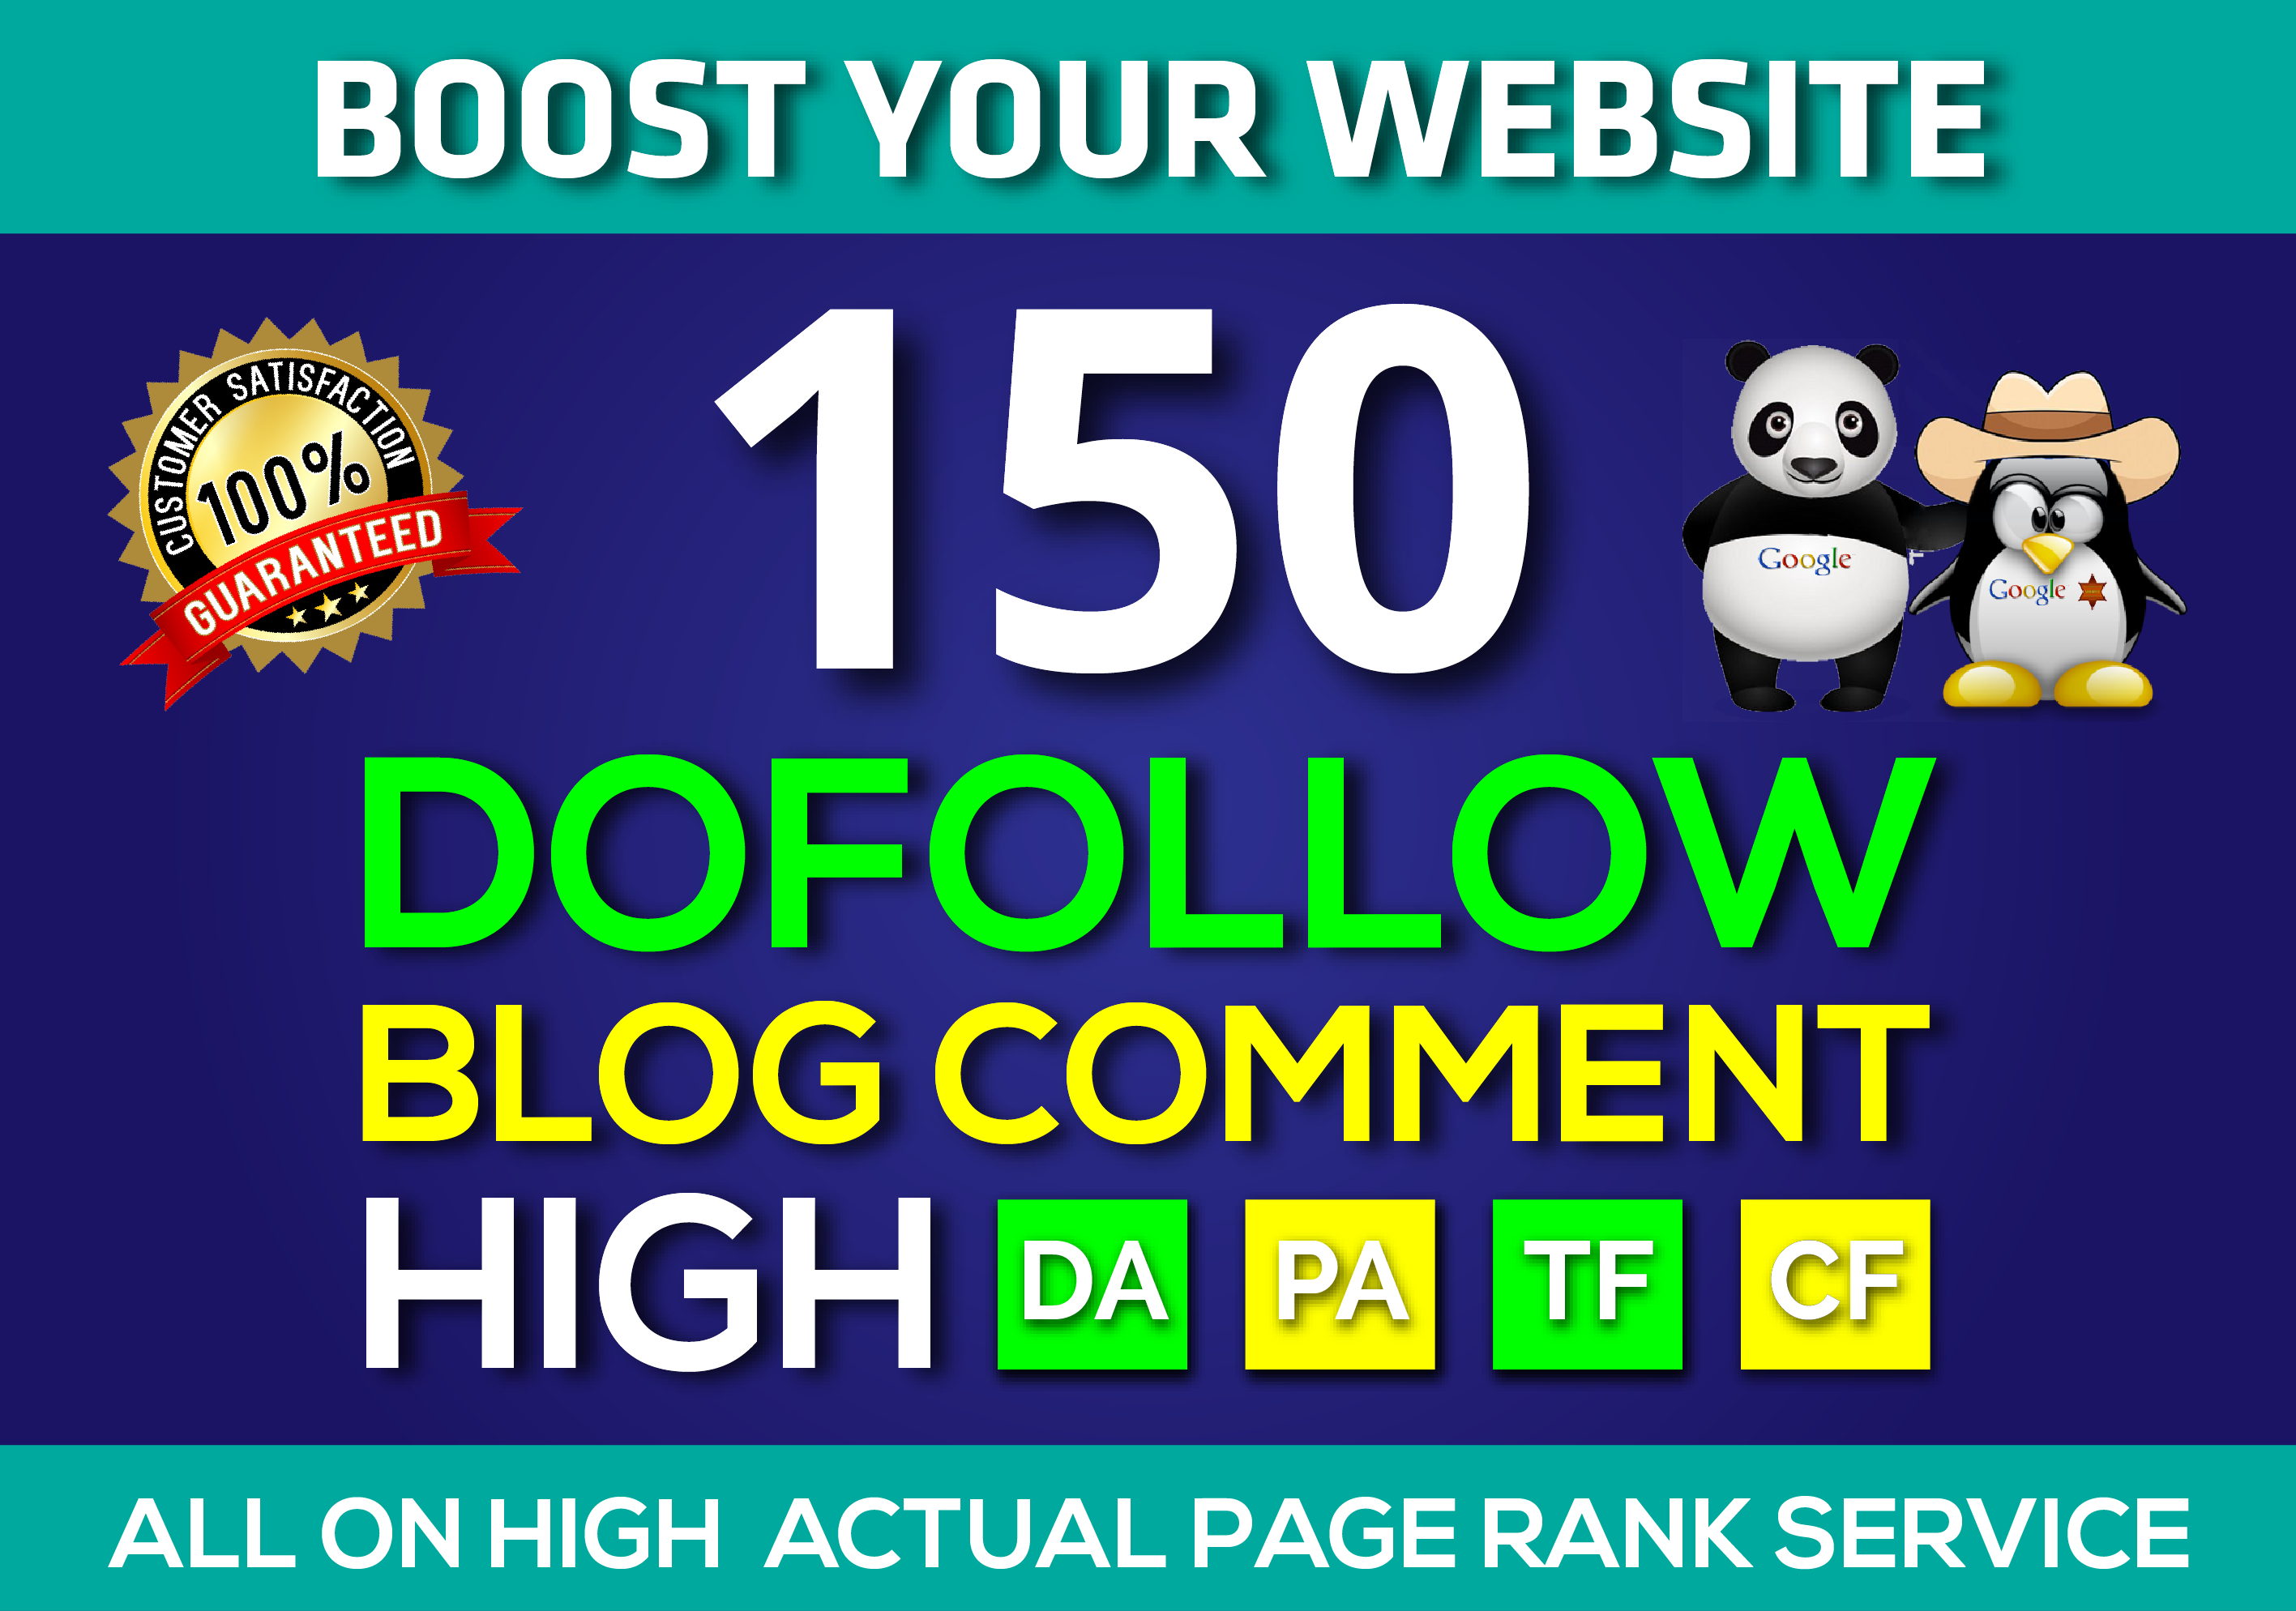 i will provide 150 Unique Domains Dofollow Blog Comment Backlinks HIGH DA PA TF CF on Actual Page